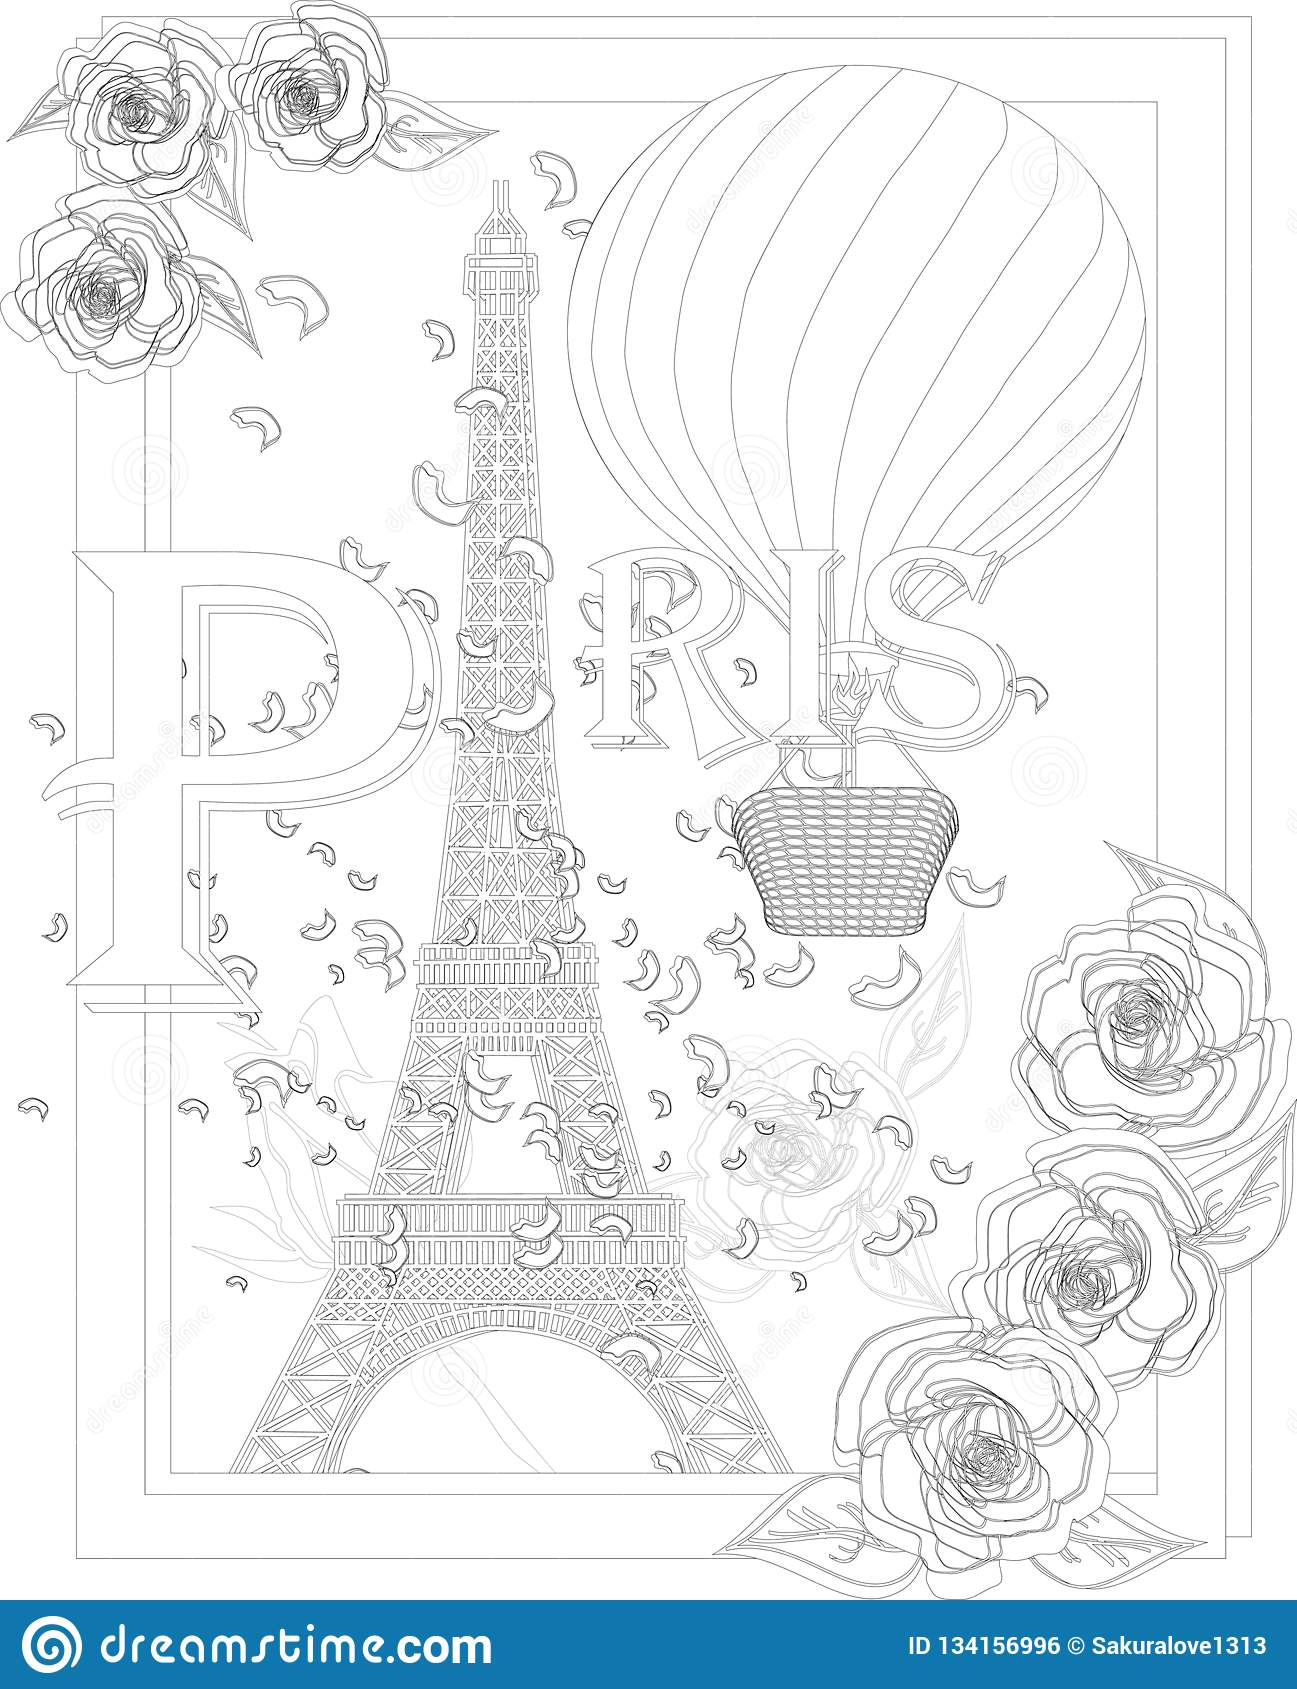 Eiffel-Tower-Coloring-Pages – Sustainable St Albans | 1689x1297